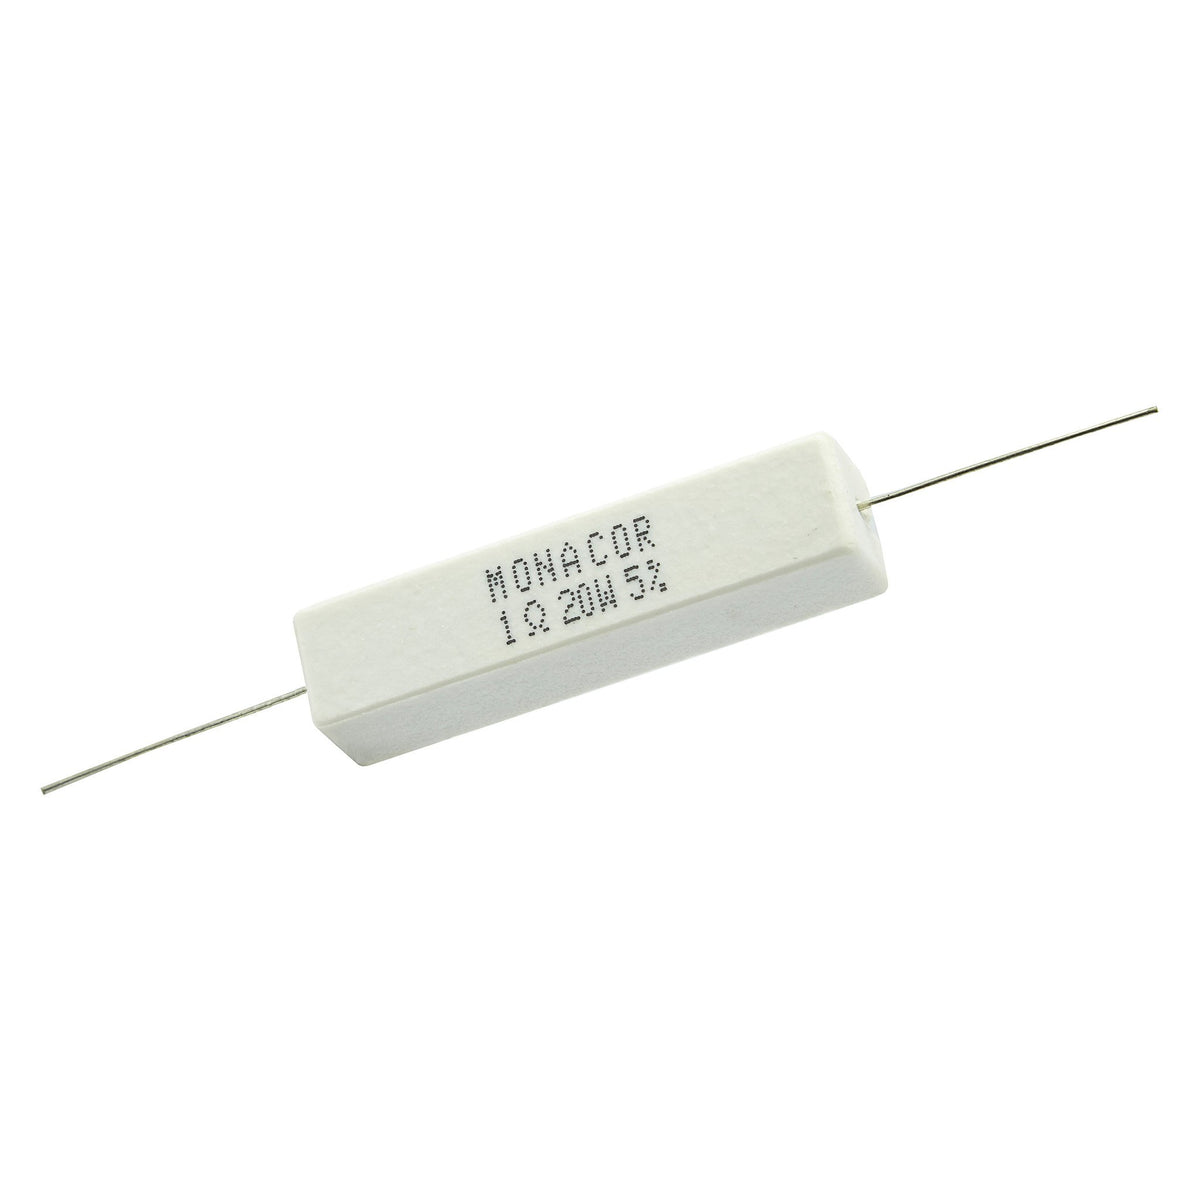 1.0 Ohm 20 Watt 5% Ceramic Wirewound Resistor - Willys-Hifi Ltd